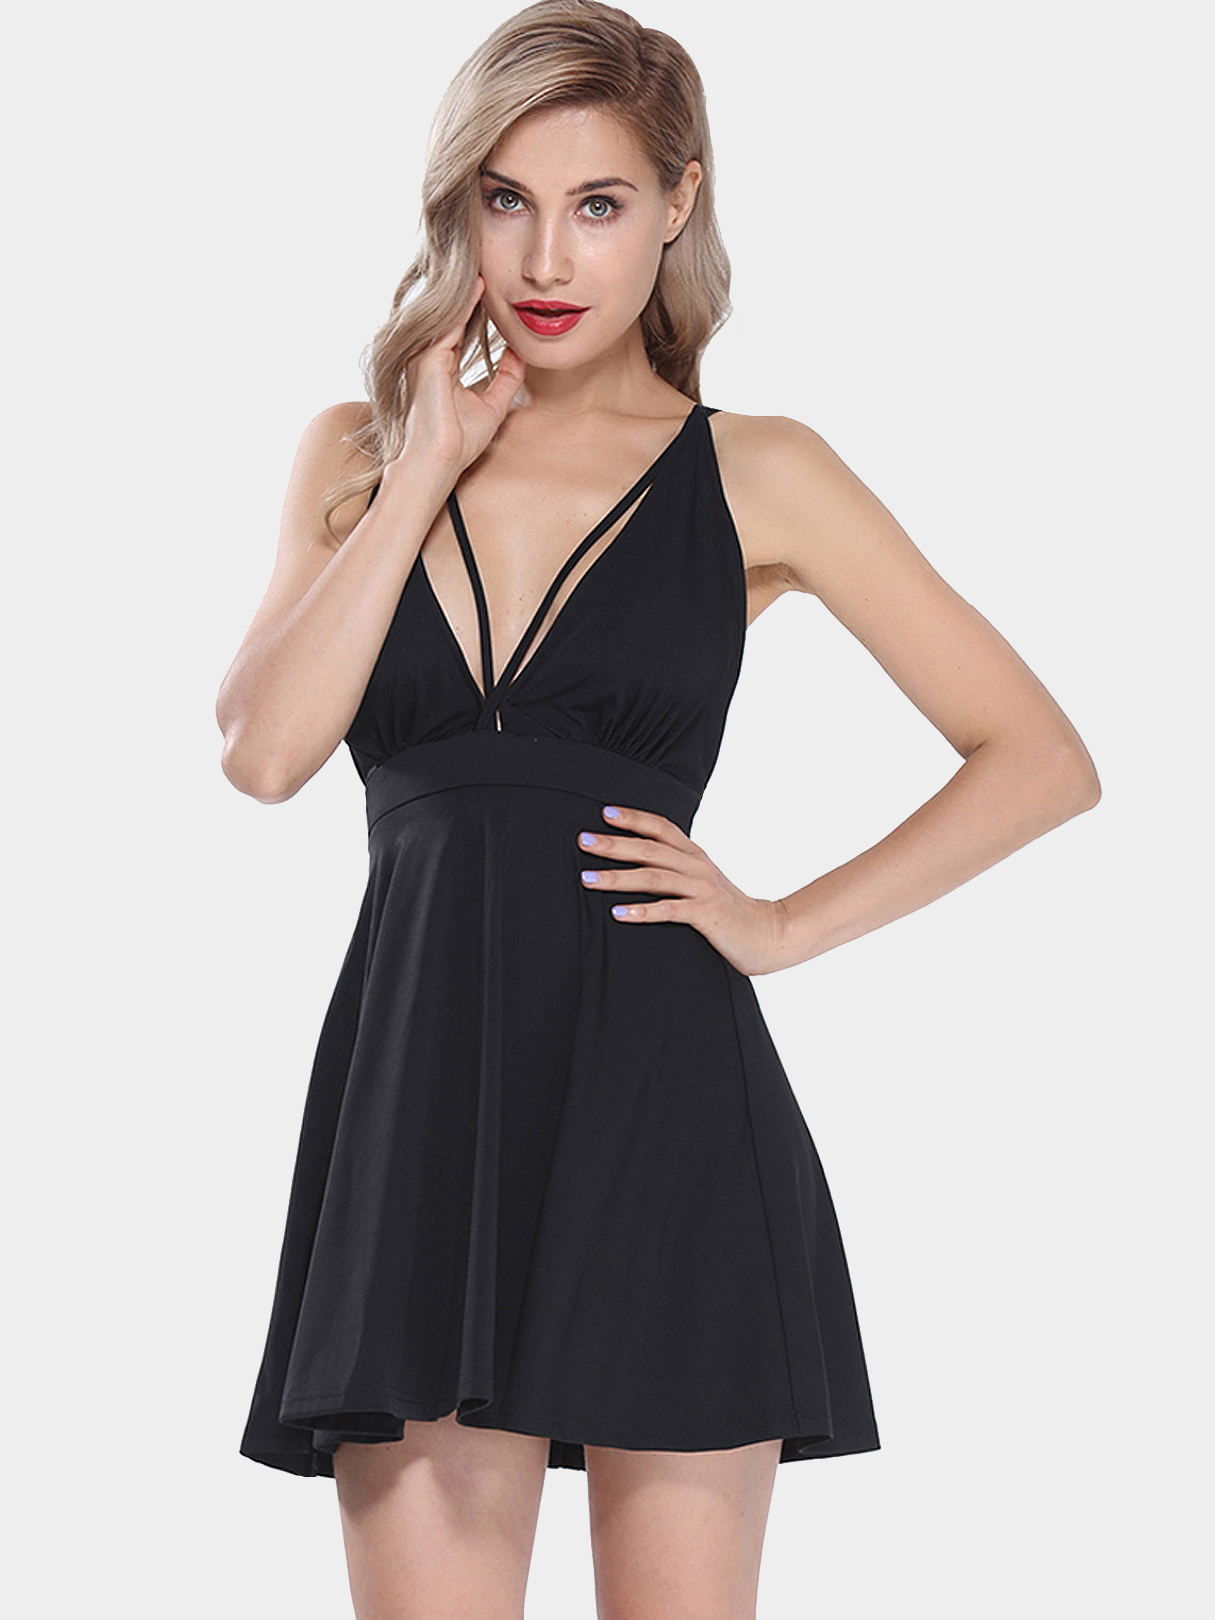 Cross Strap Dress with Plunging Neck